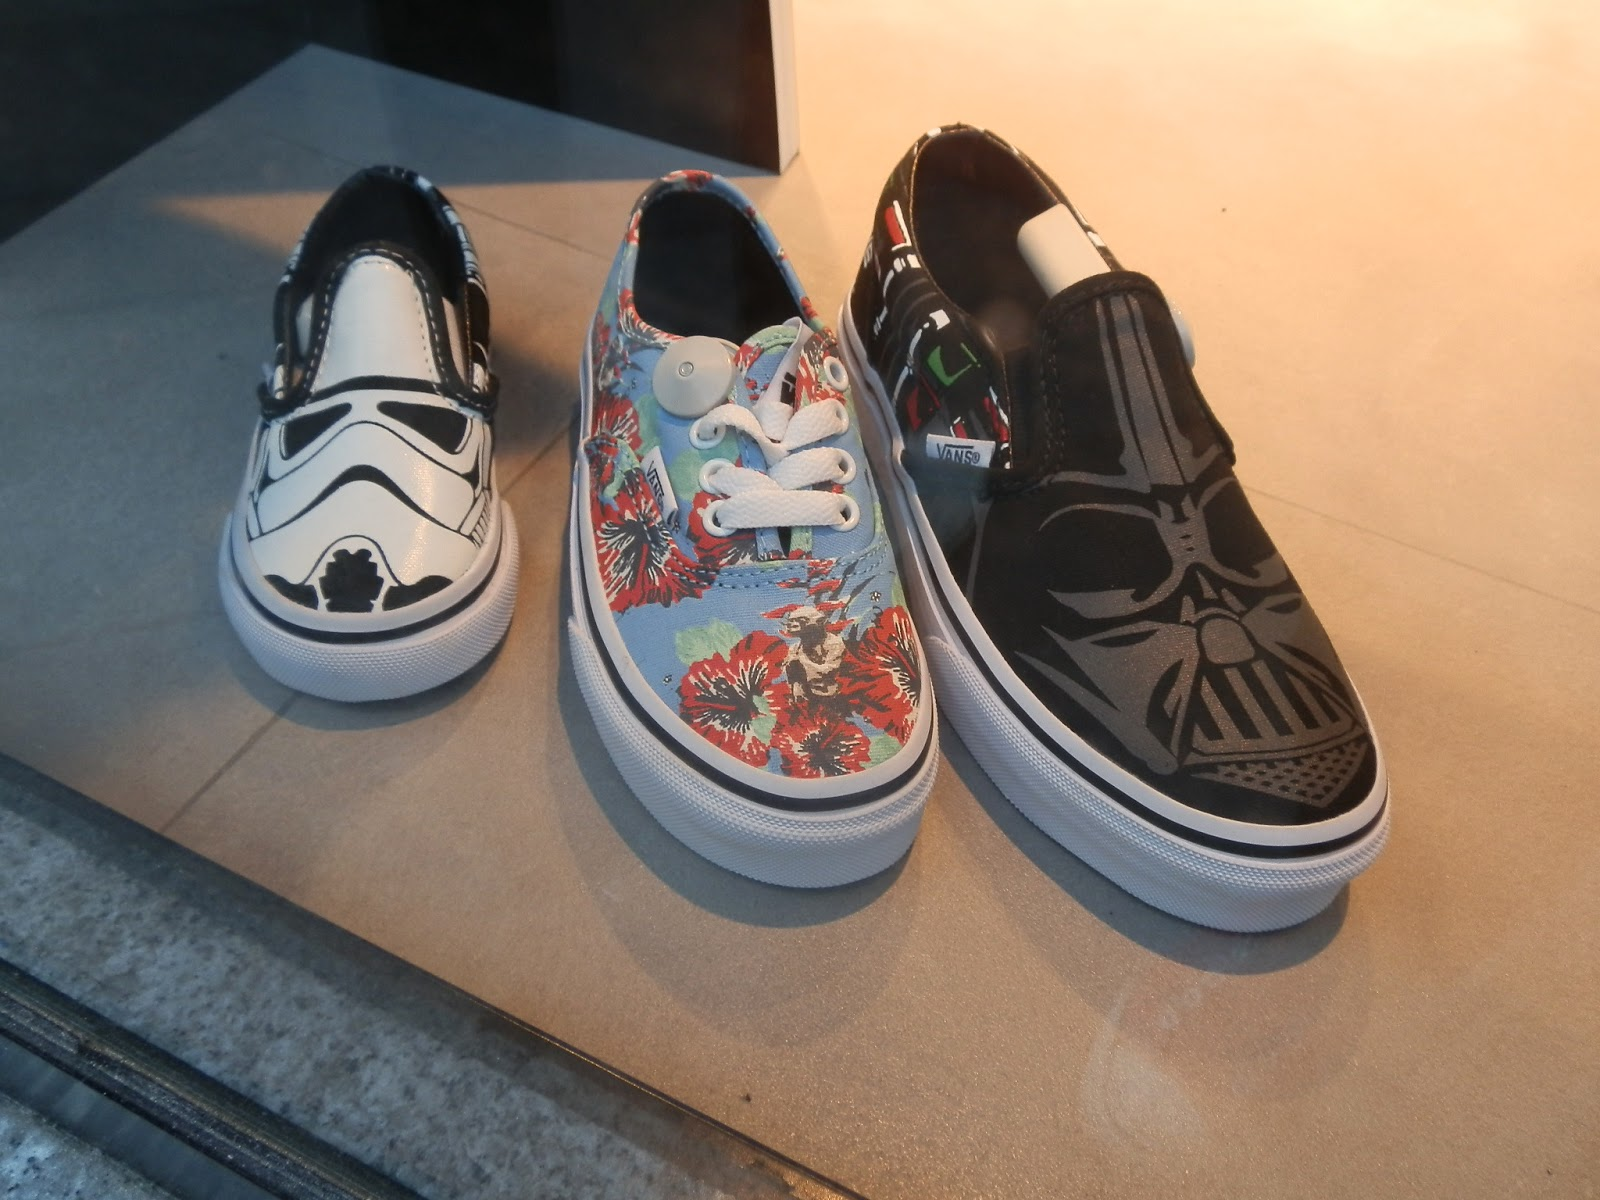 Vans Toy Story Slip On Frontera popular